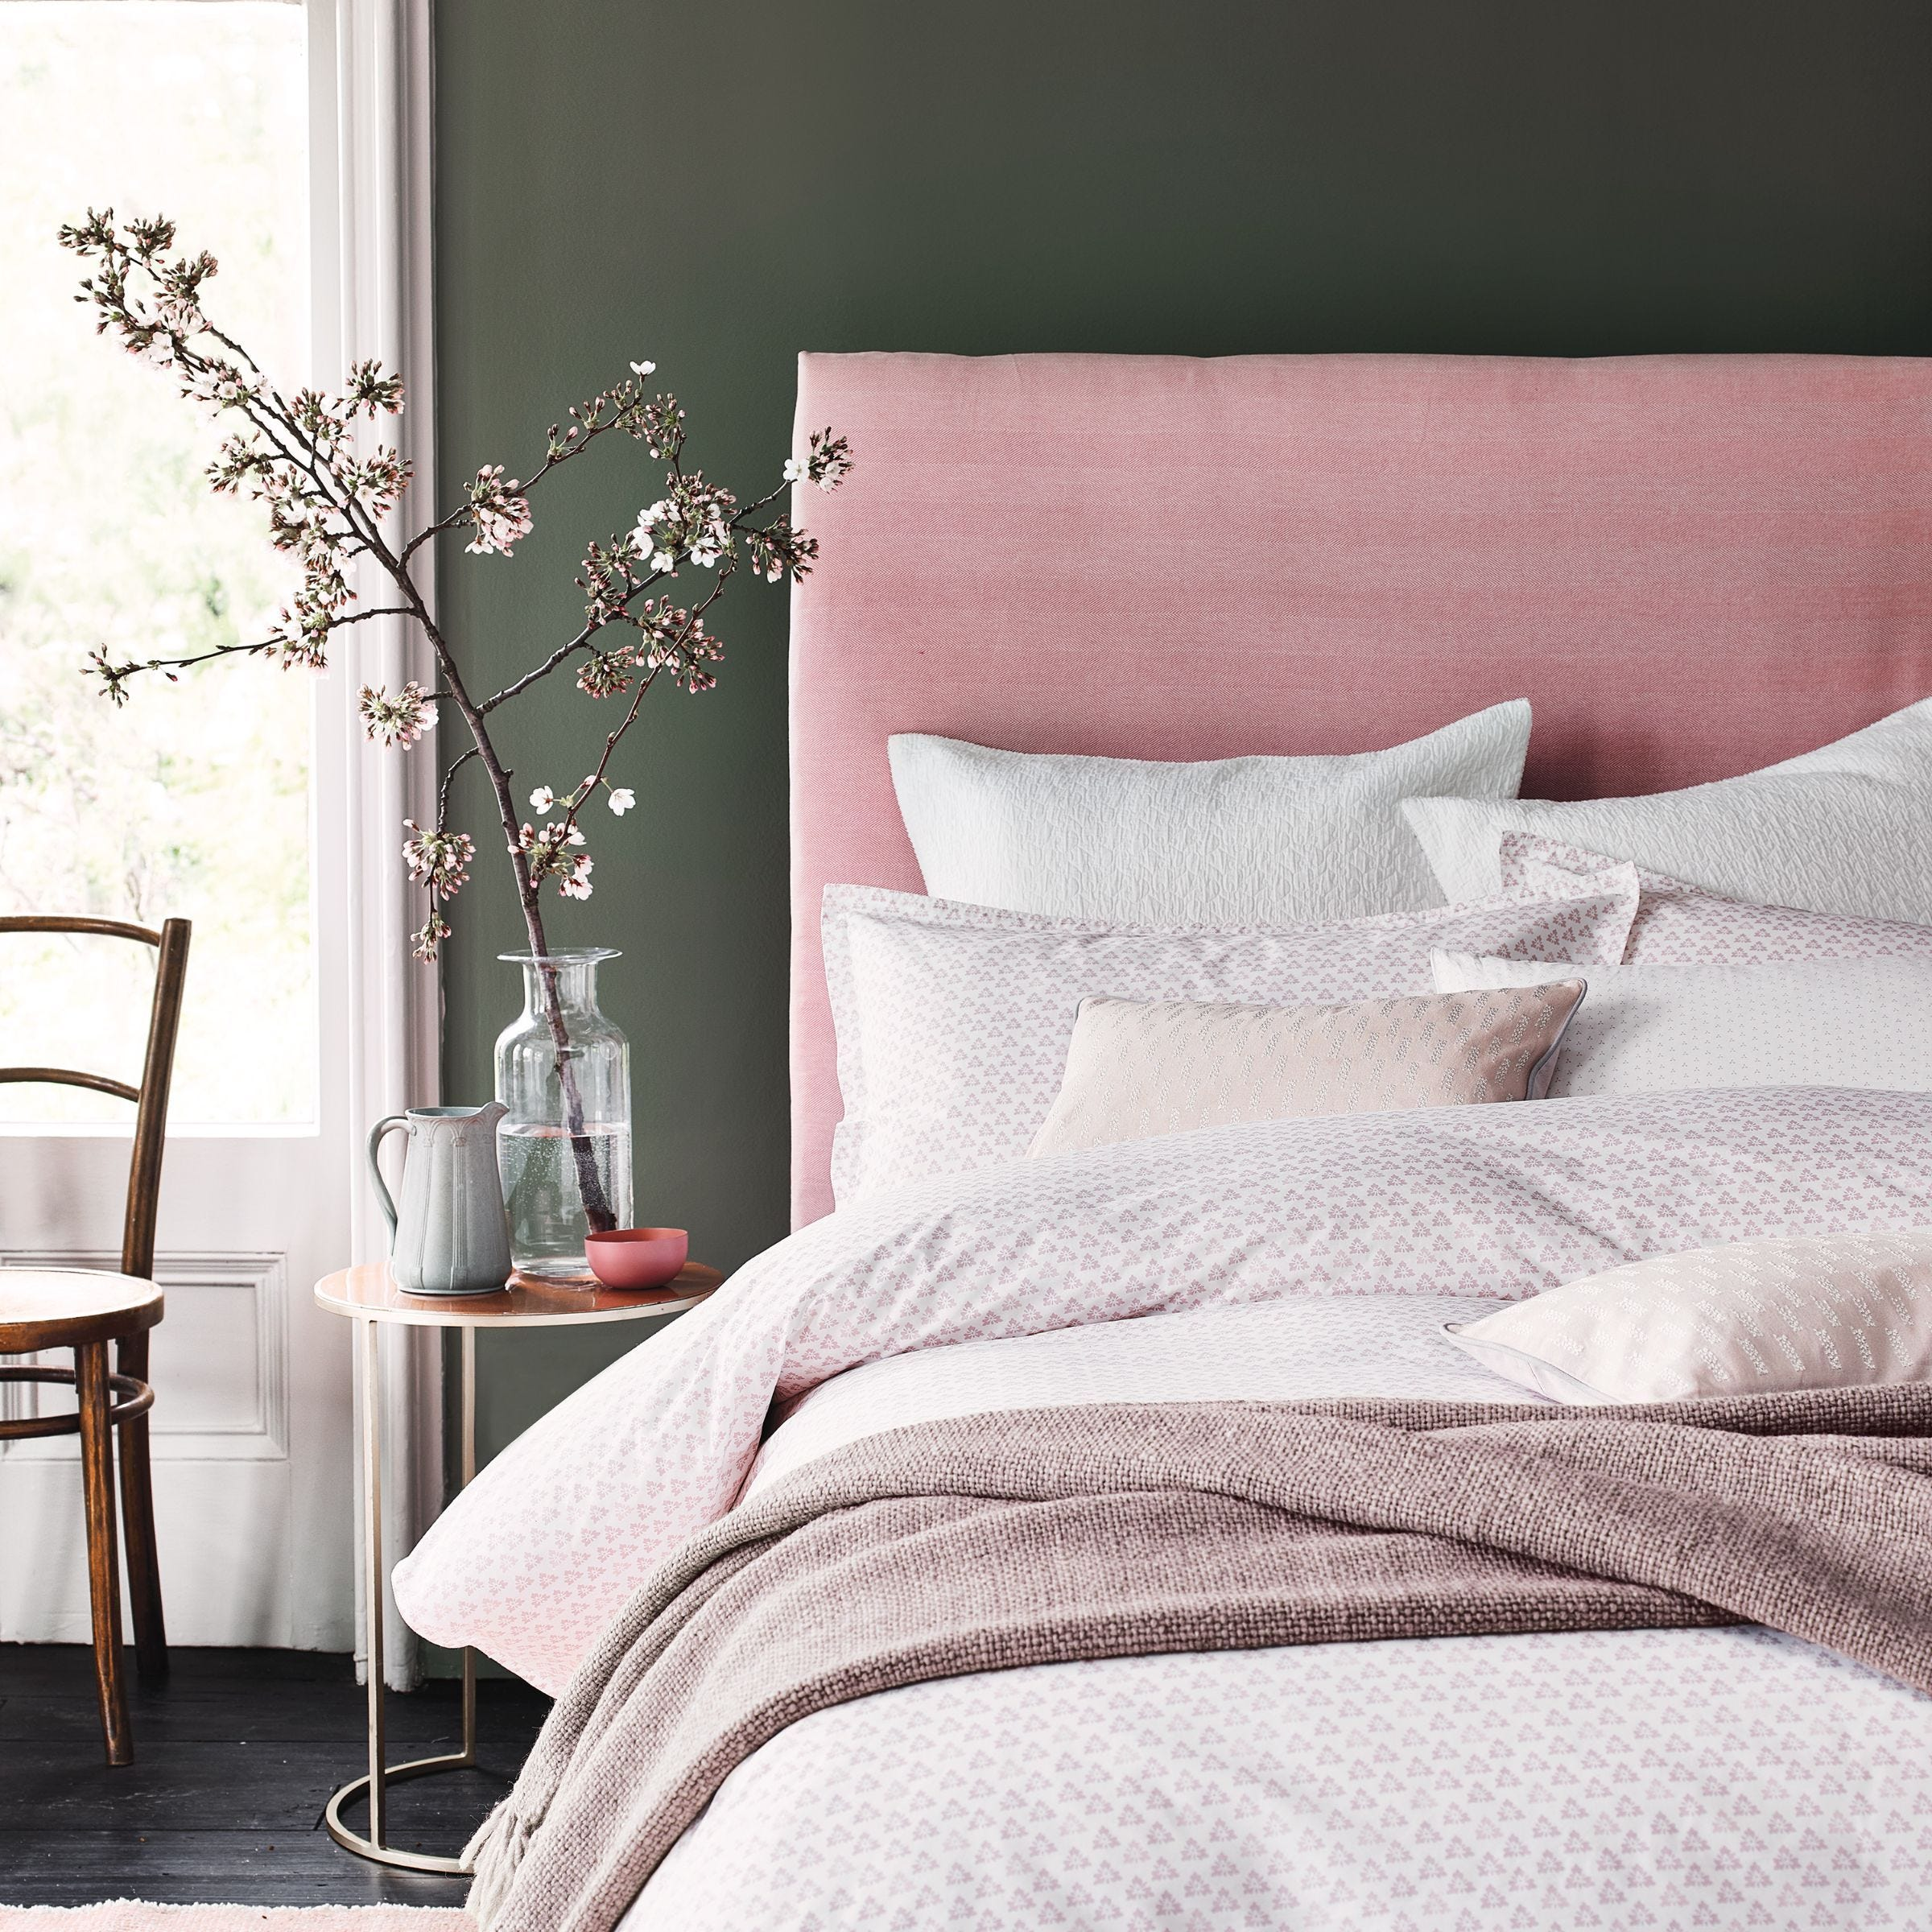 Bedeck Murmur Tua Blush Duvet Cover Set